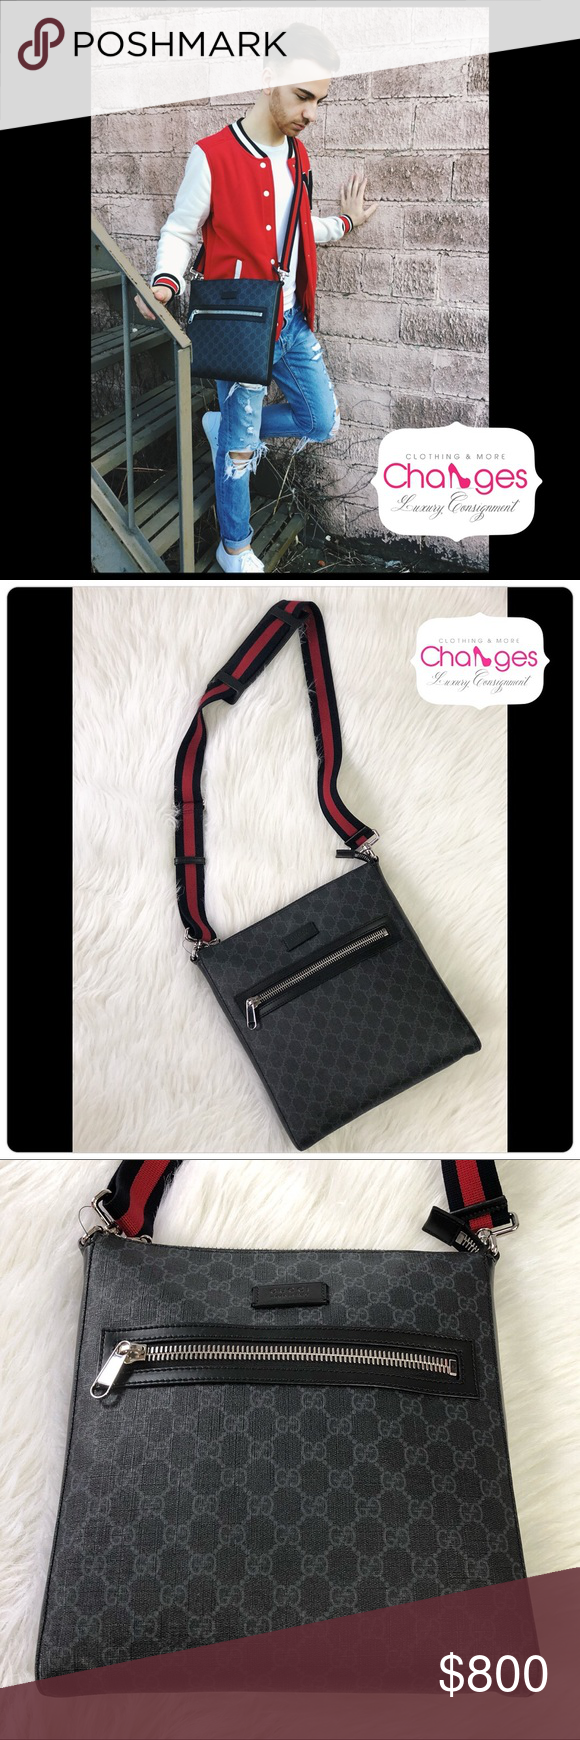 5b2f77aed1b27f GUCCI GG Supreme Messenger for Men or Women Amazing & Guaranteed  authentic GUCCI messenger bag